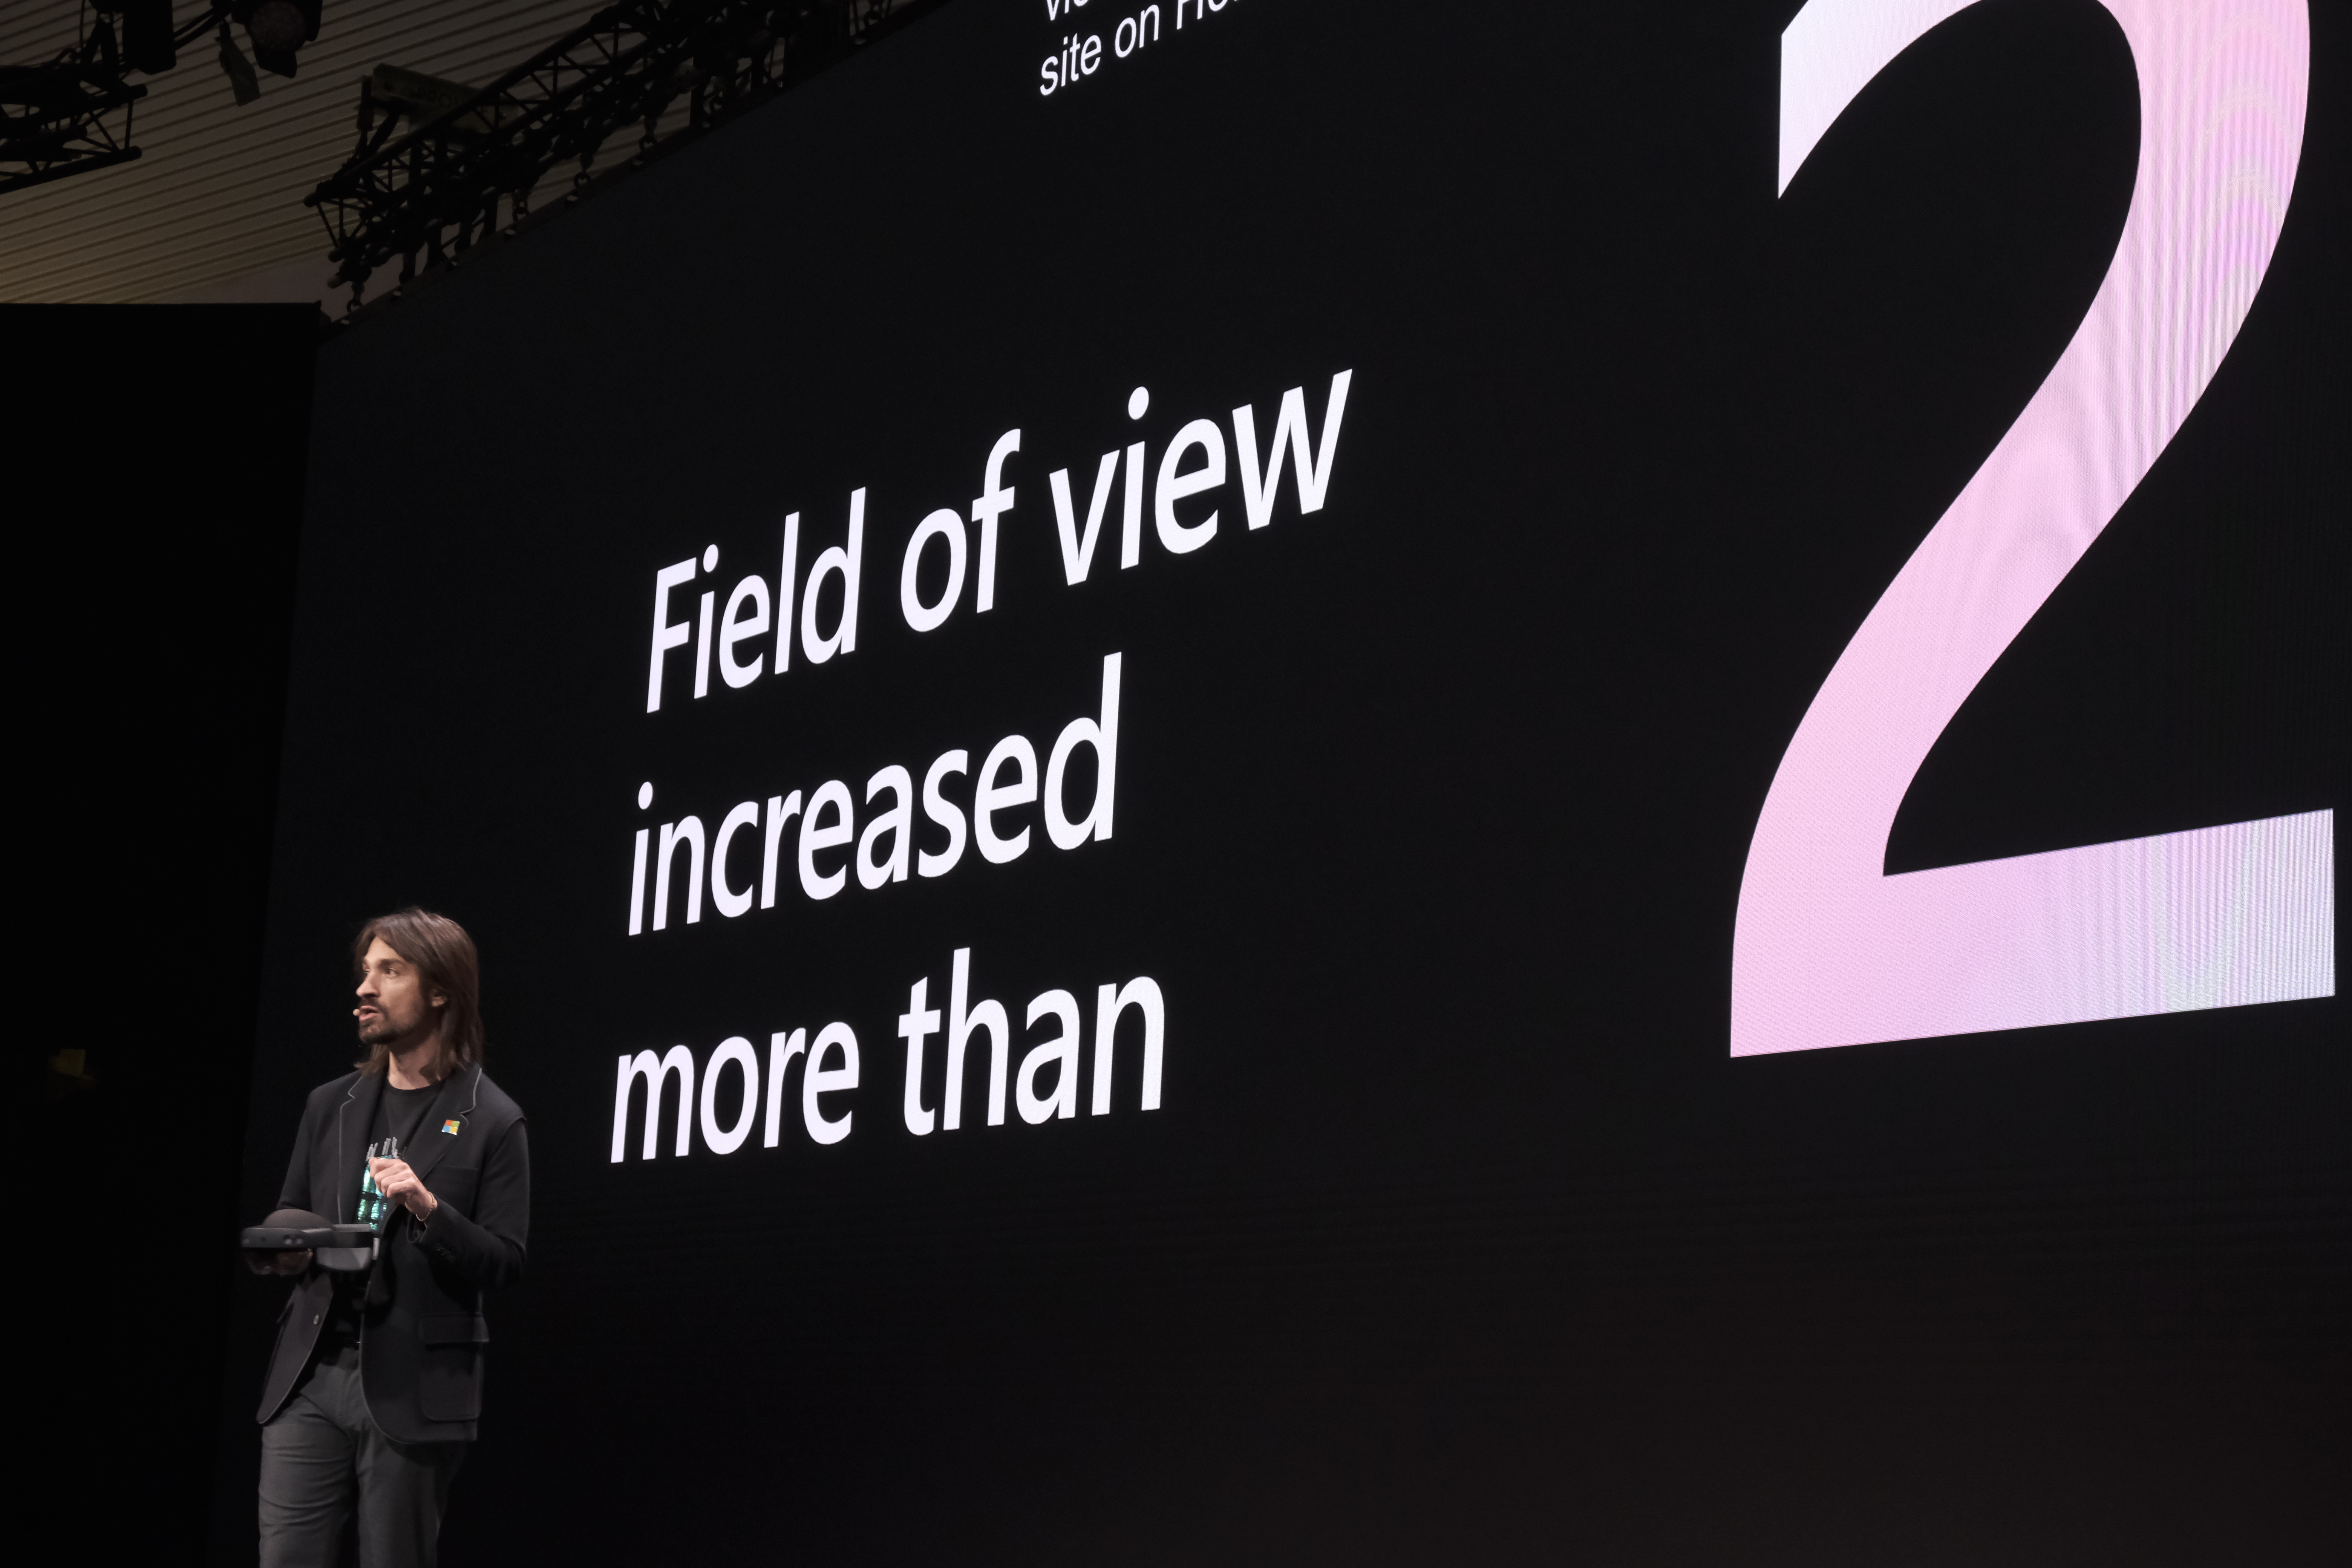 Say hello to Microsoft's new HoloLens with twice the field of view